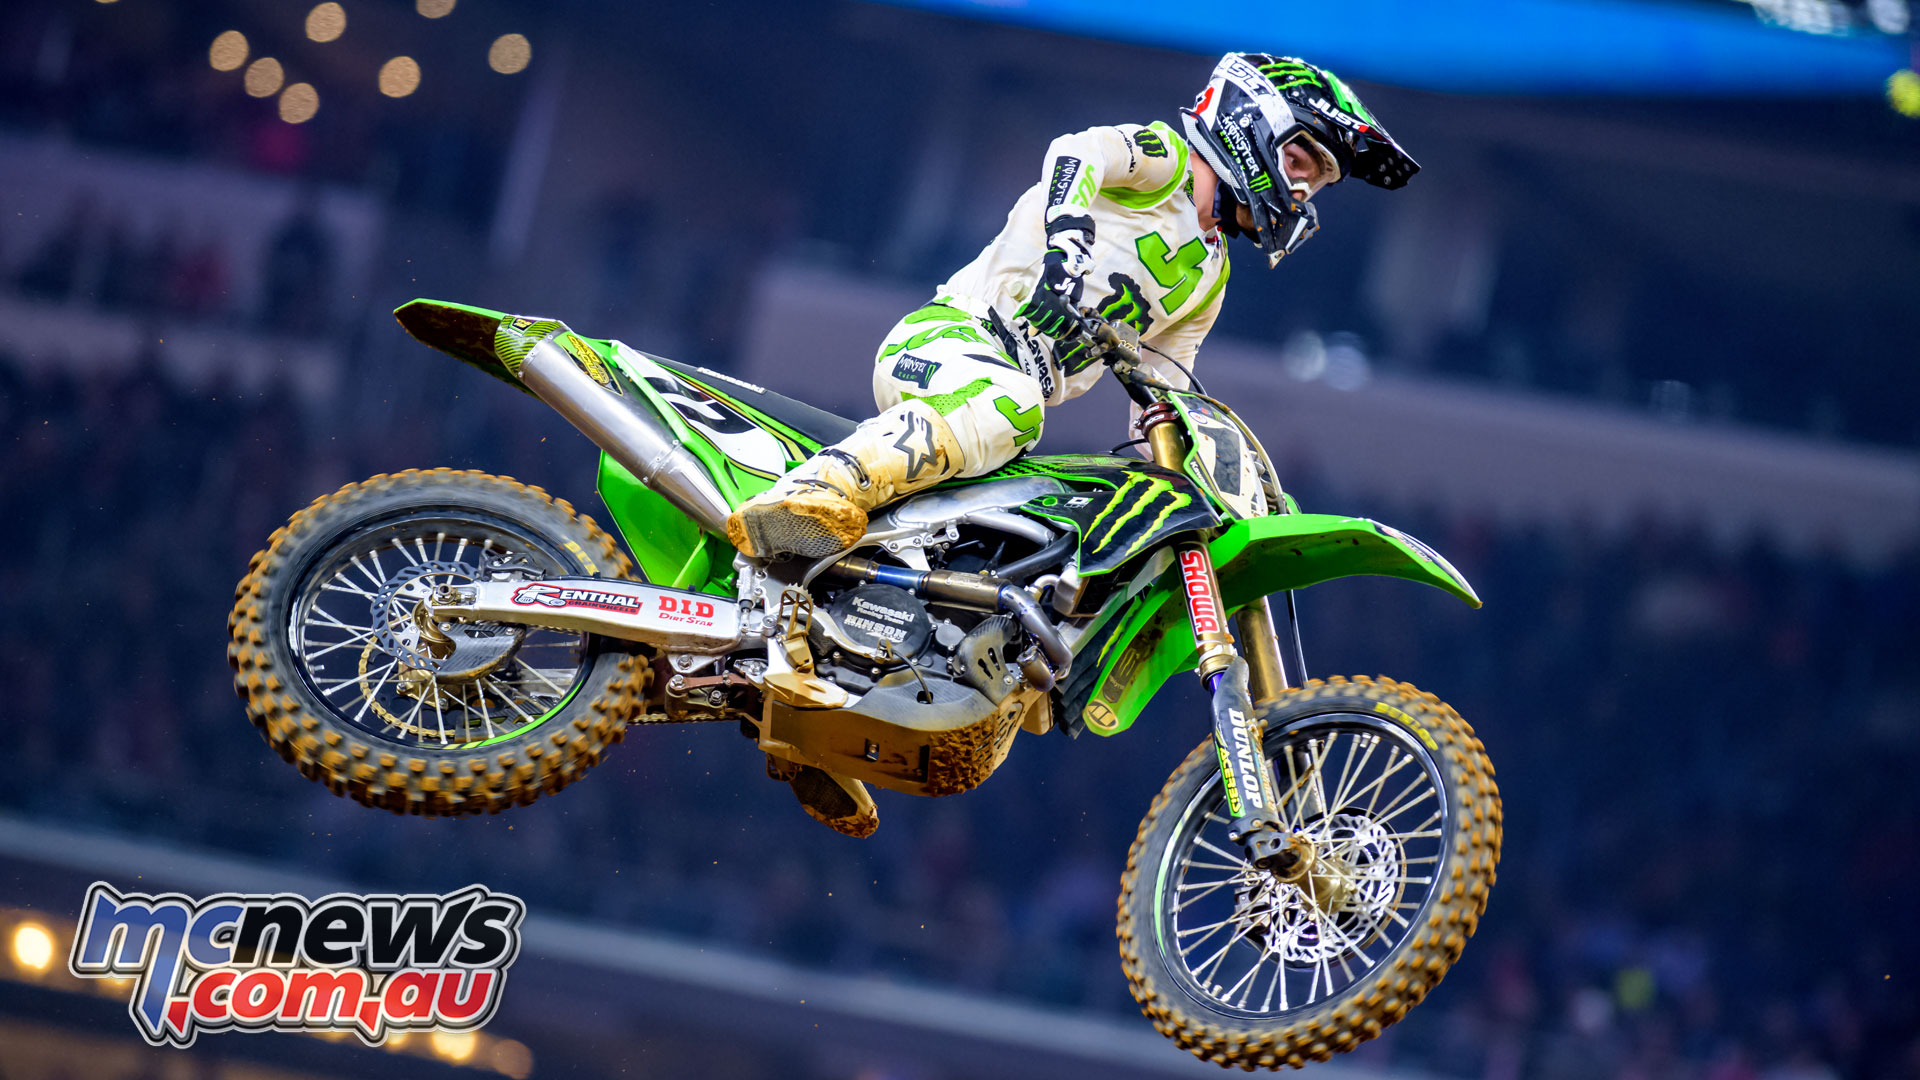 Rookie of the year Joey Savatgy World Supercross Championship